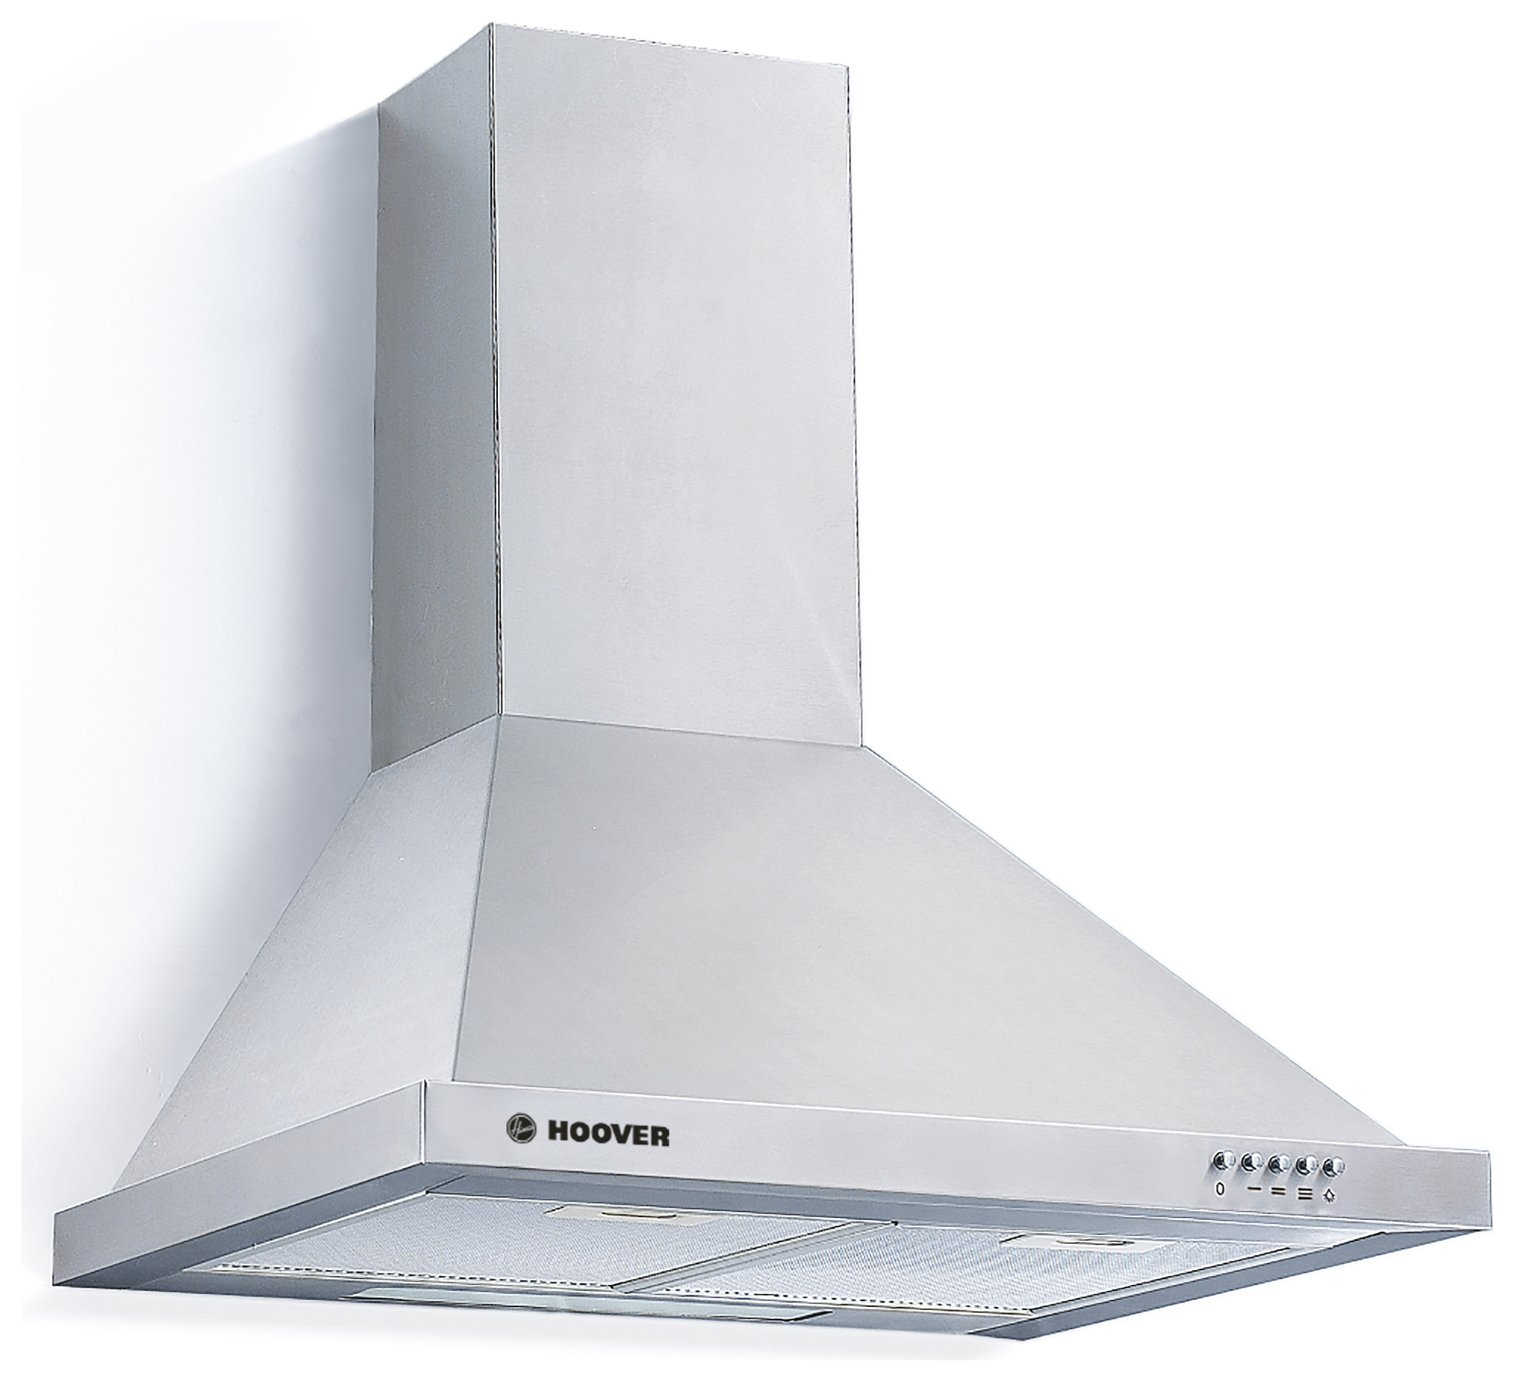 Hoover HCE160X Cooker Hood - Stainless Steel